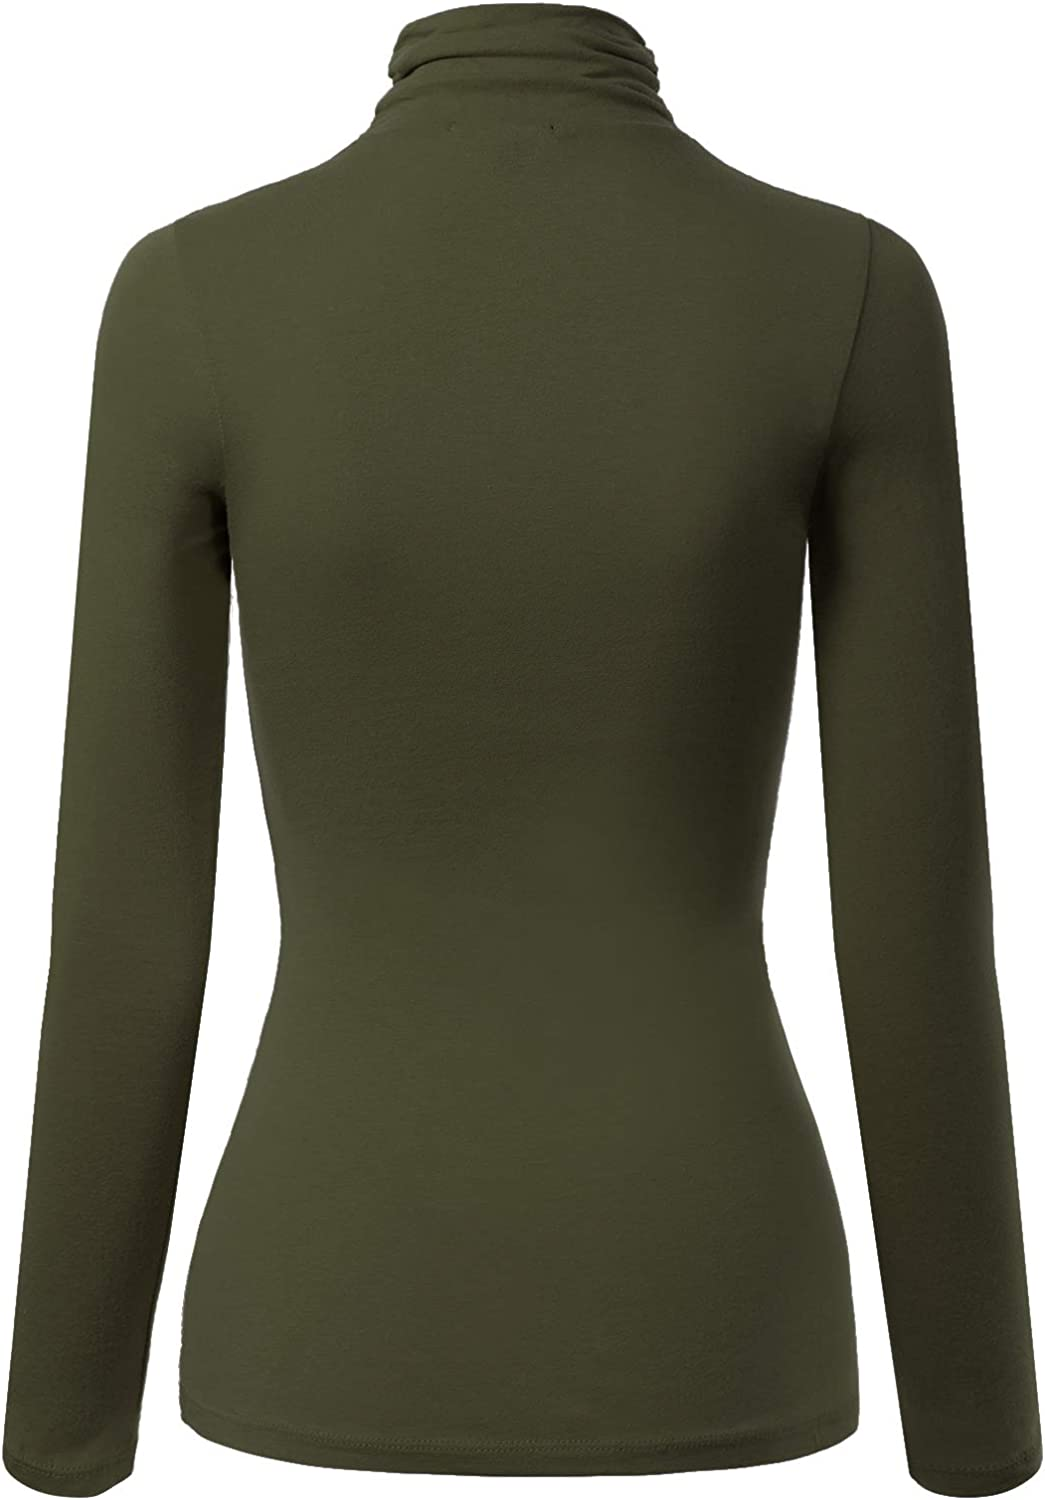 MixMatchy Womens Solid Tight Fit Lightweight Long Sleeves Mock Neck Top